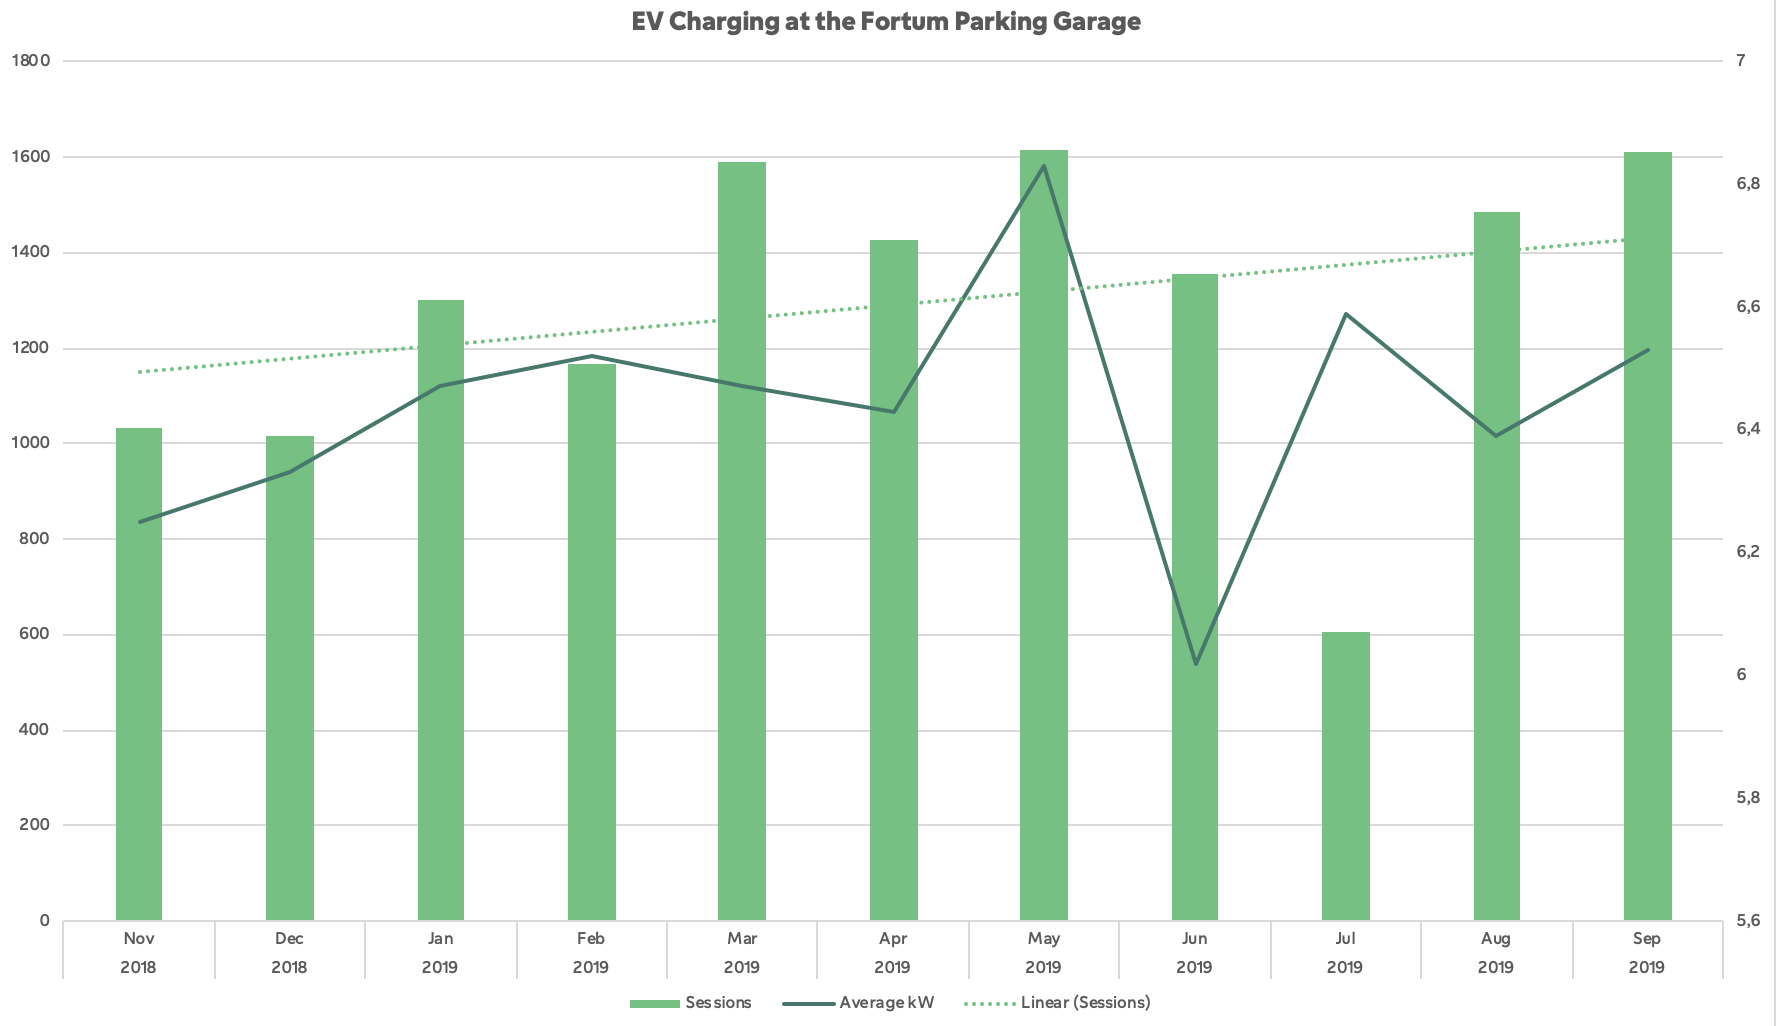 Fortum parking lot sessions and average consumption